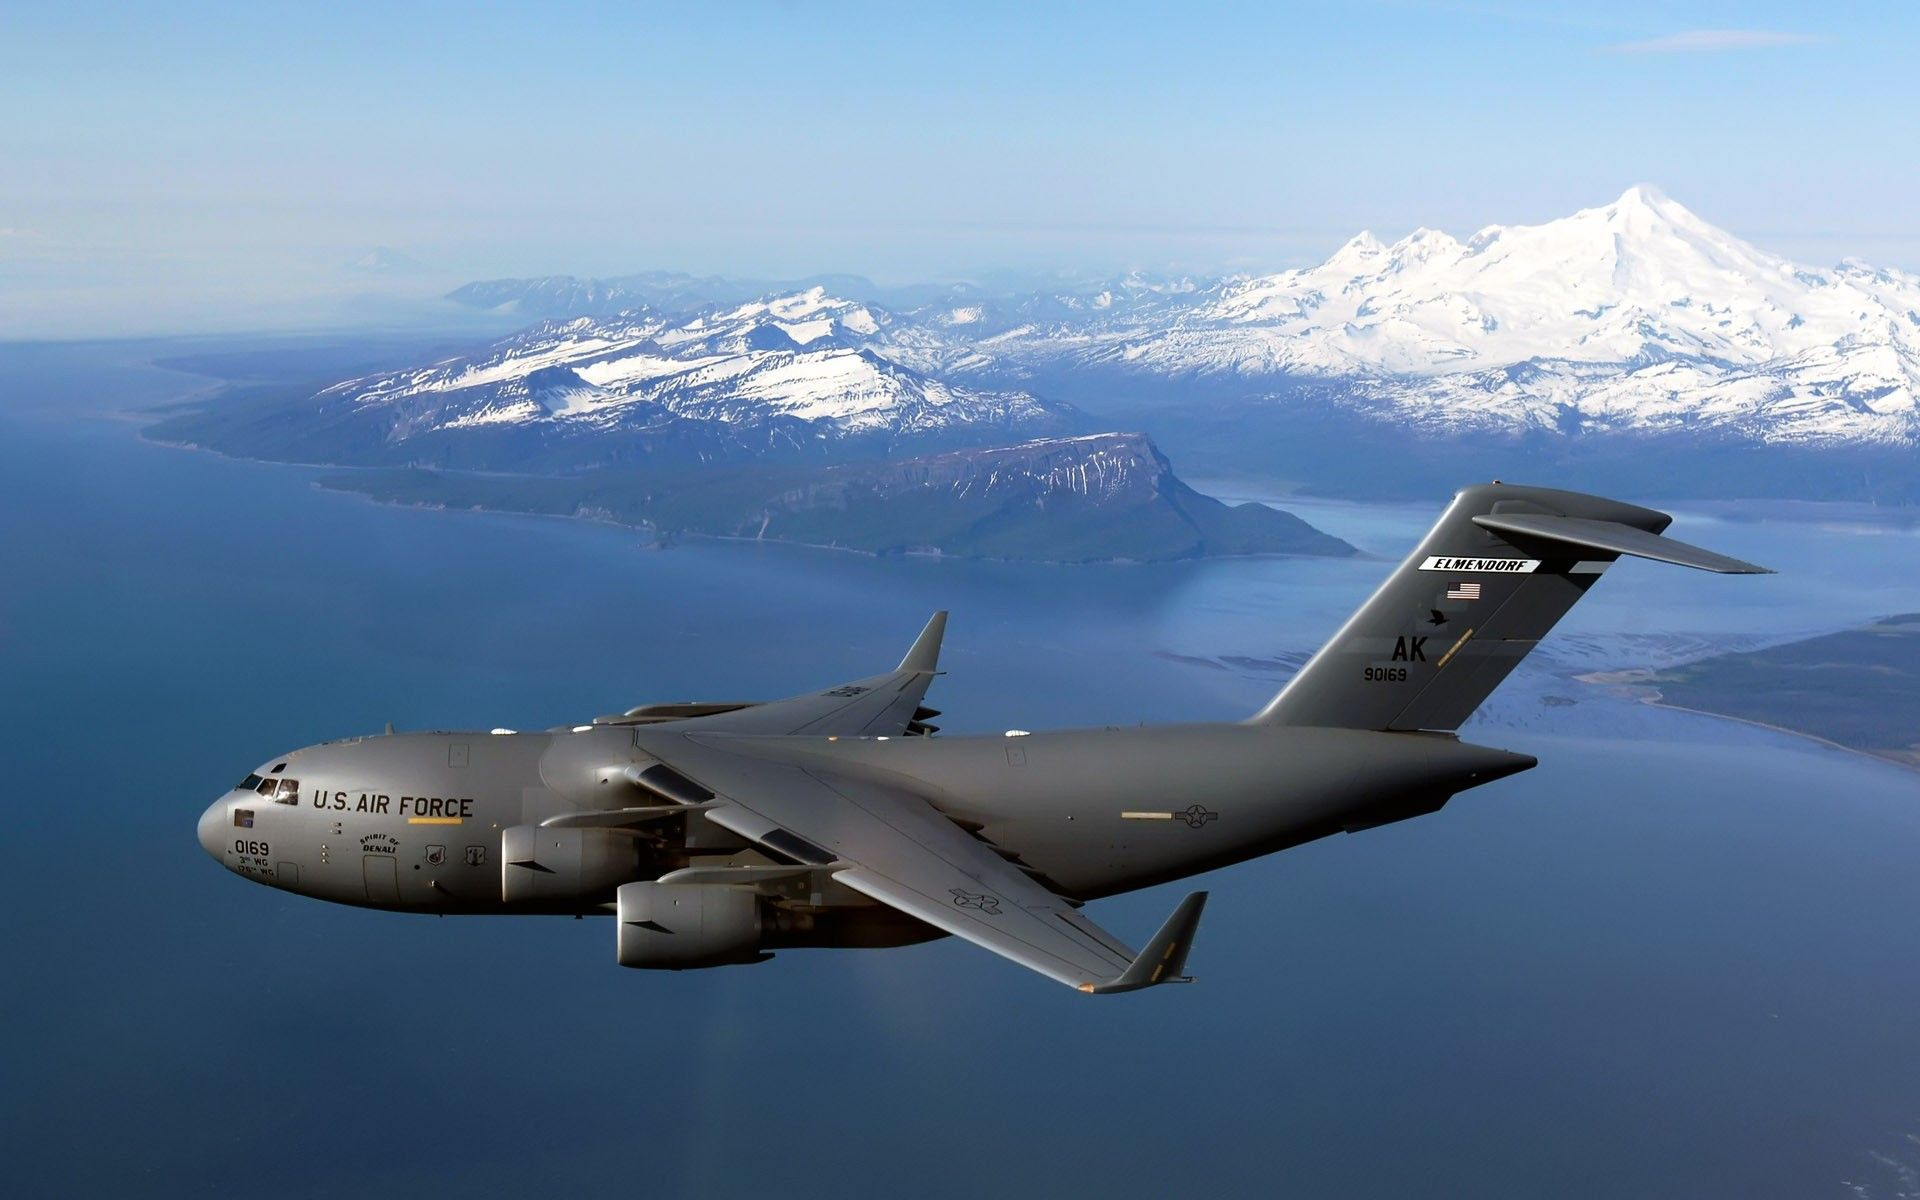 It's amazing to think that something this heavy can fly.....the C-17